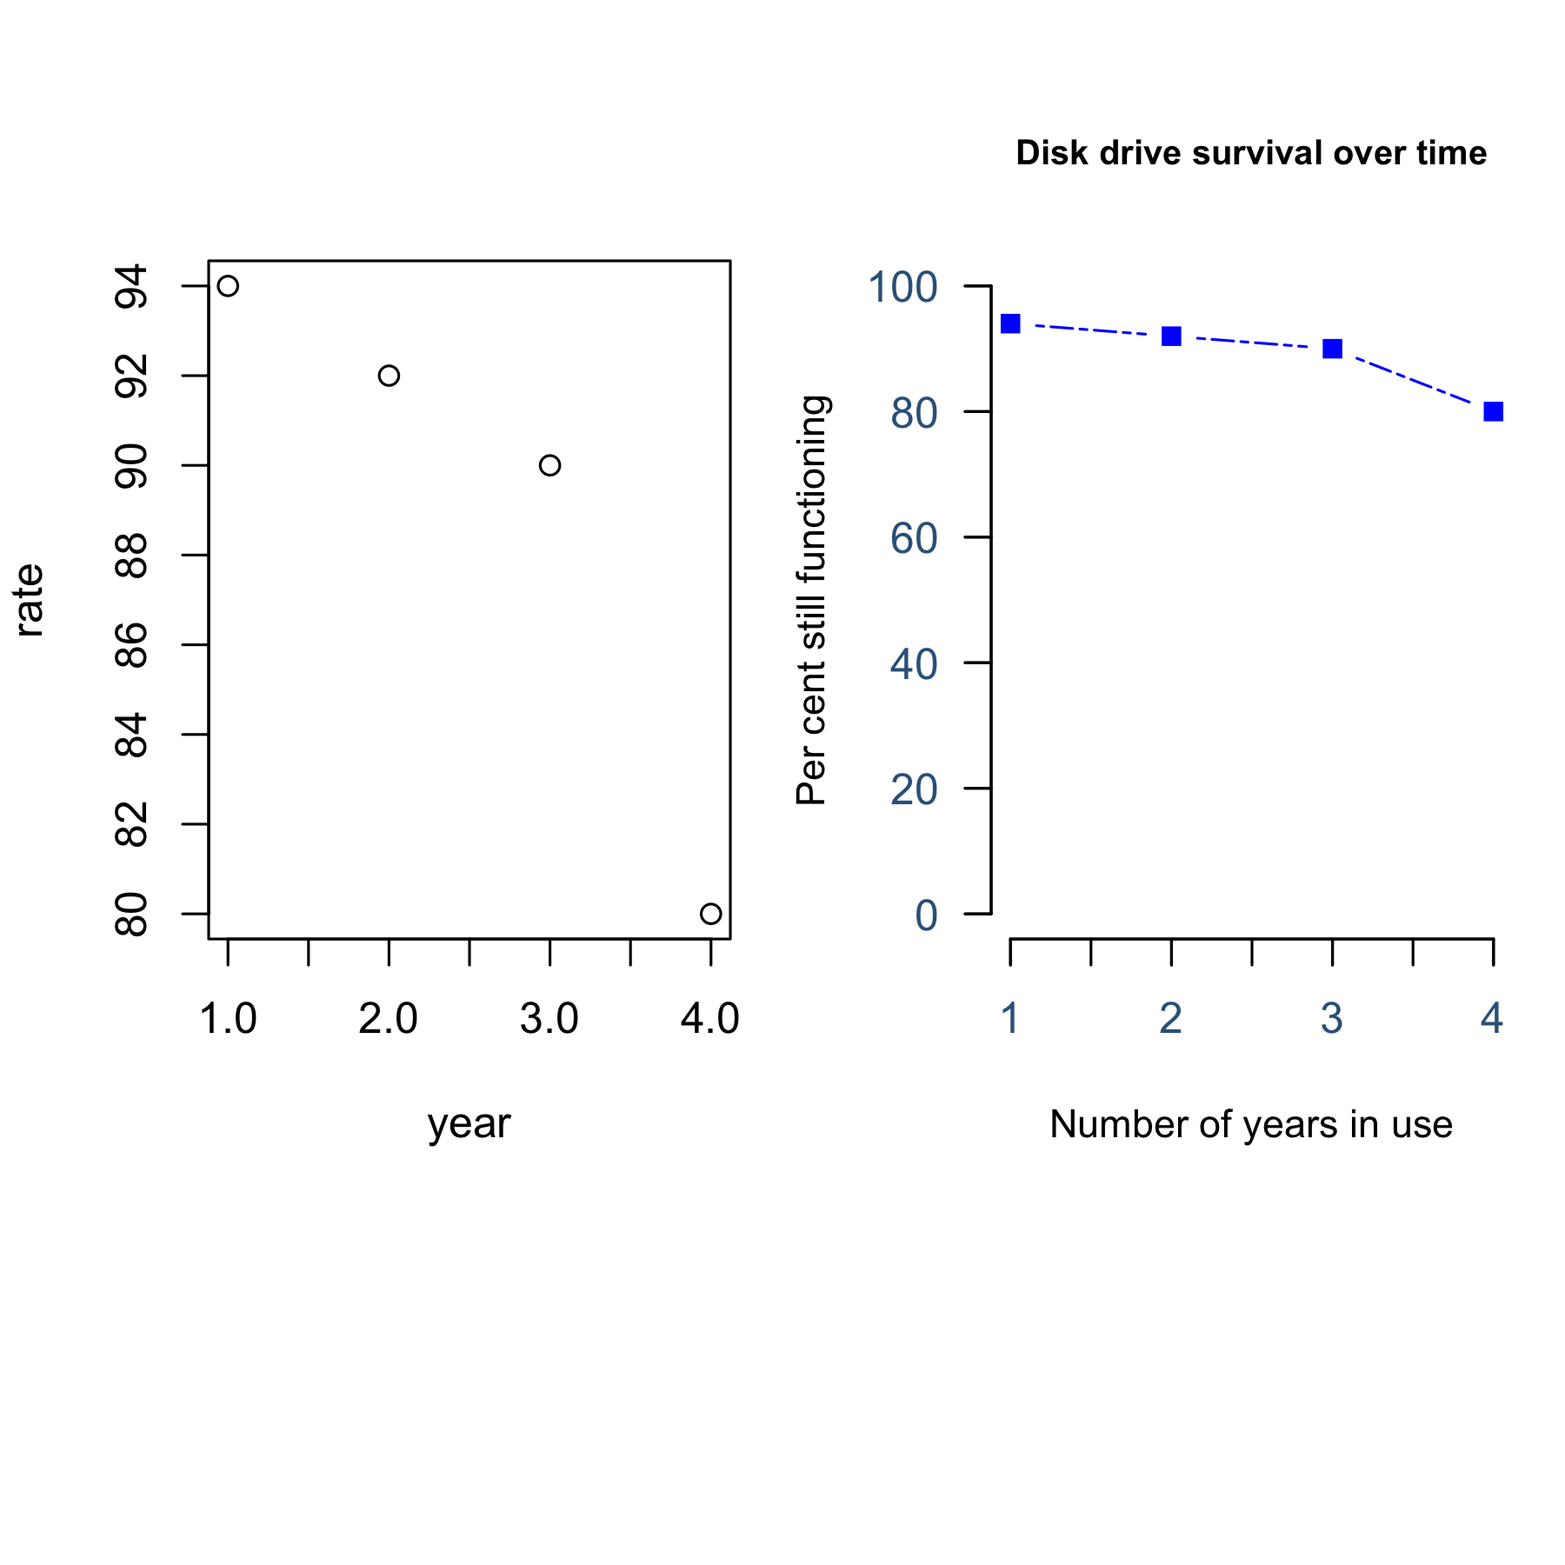 The plot on the left side, disk drive survival rate versus years in use, was created by the simple command: plot(year,rate). The plot on the right is customized and required many choices. How many differences do you see?